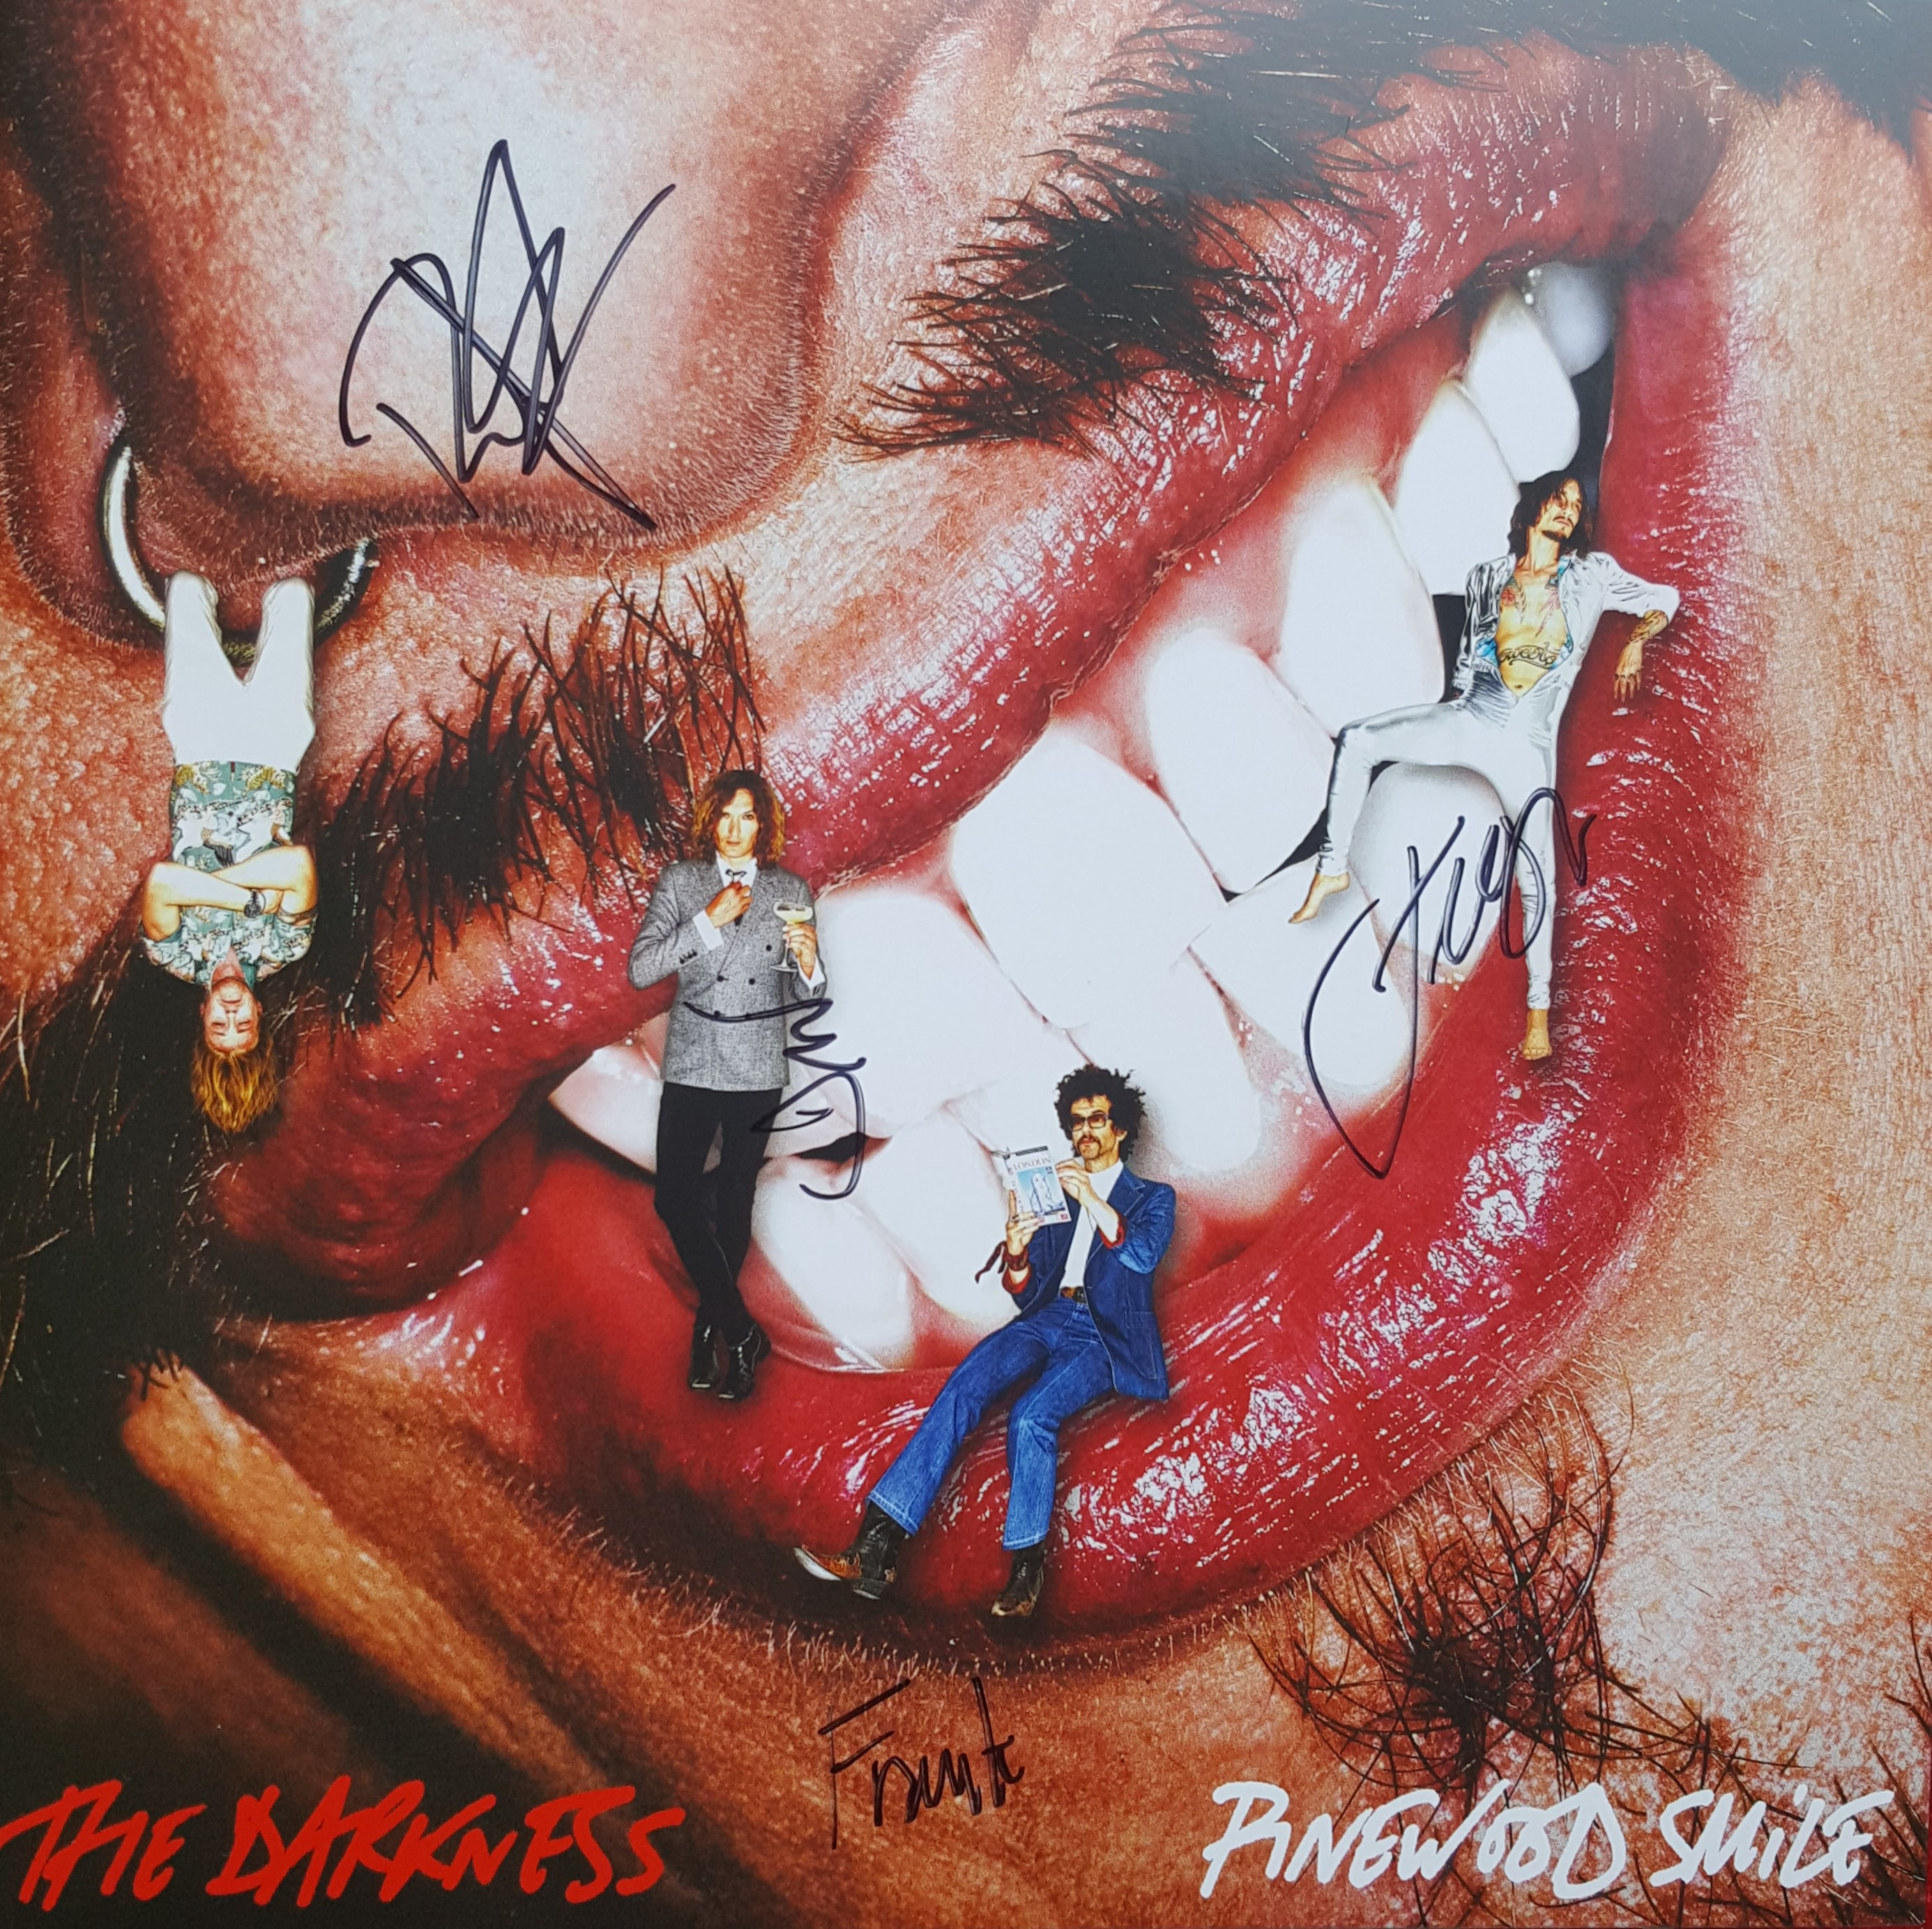 The Darkness - Pinewood Smile LP [signed 2017]